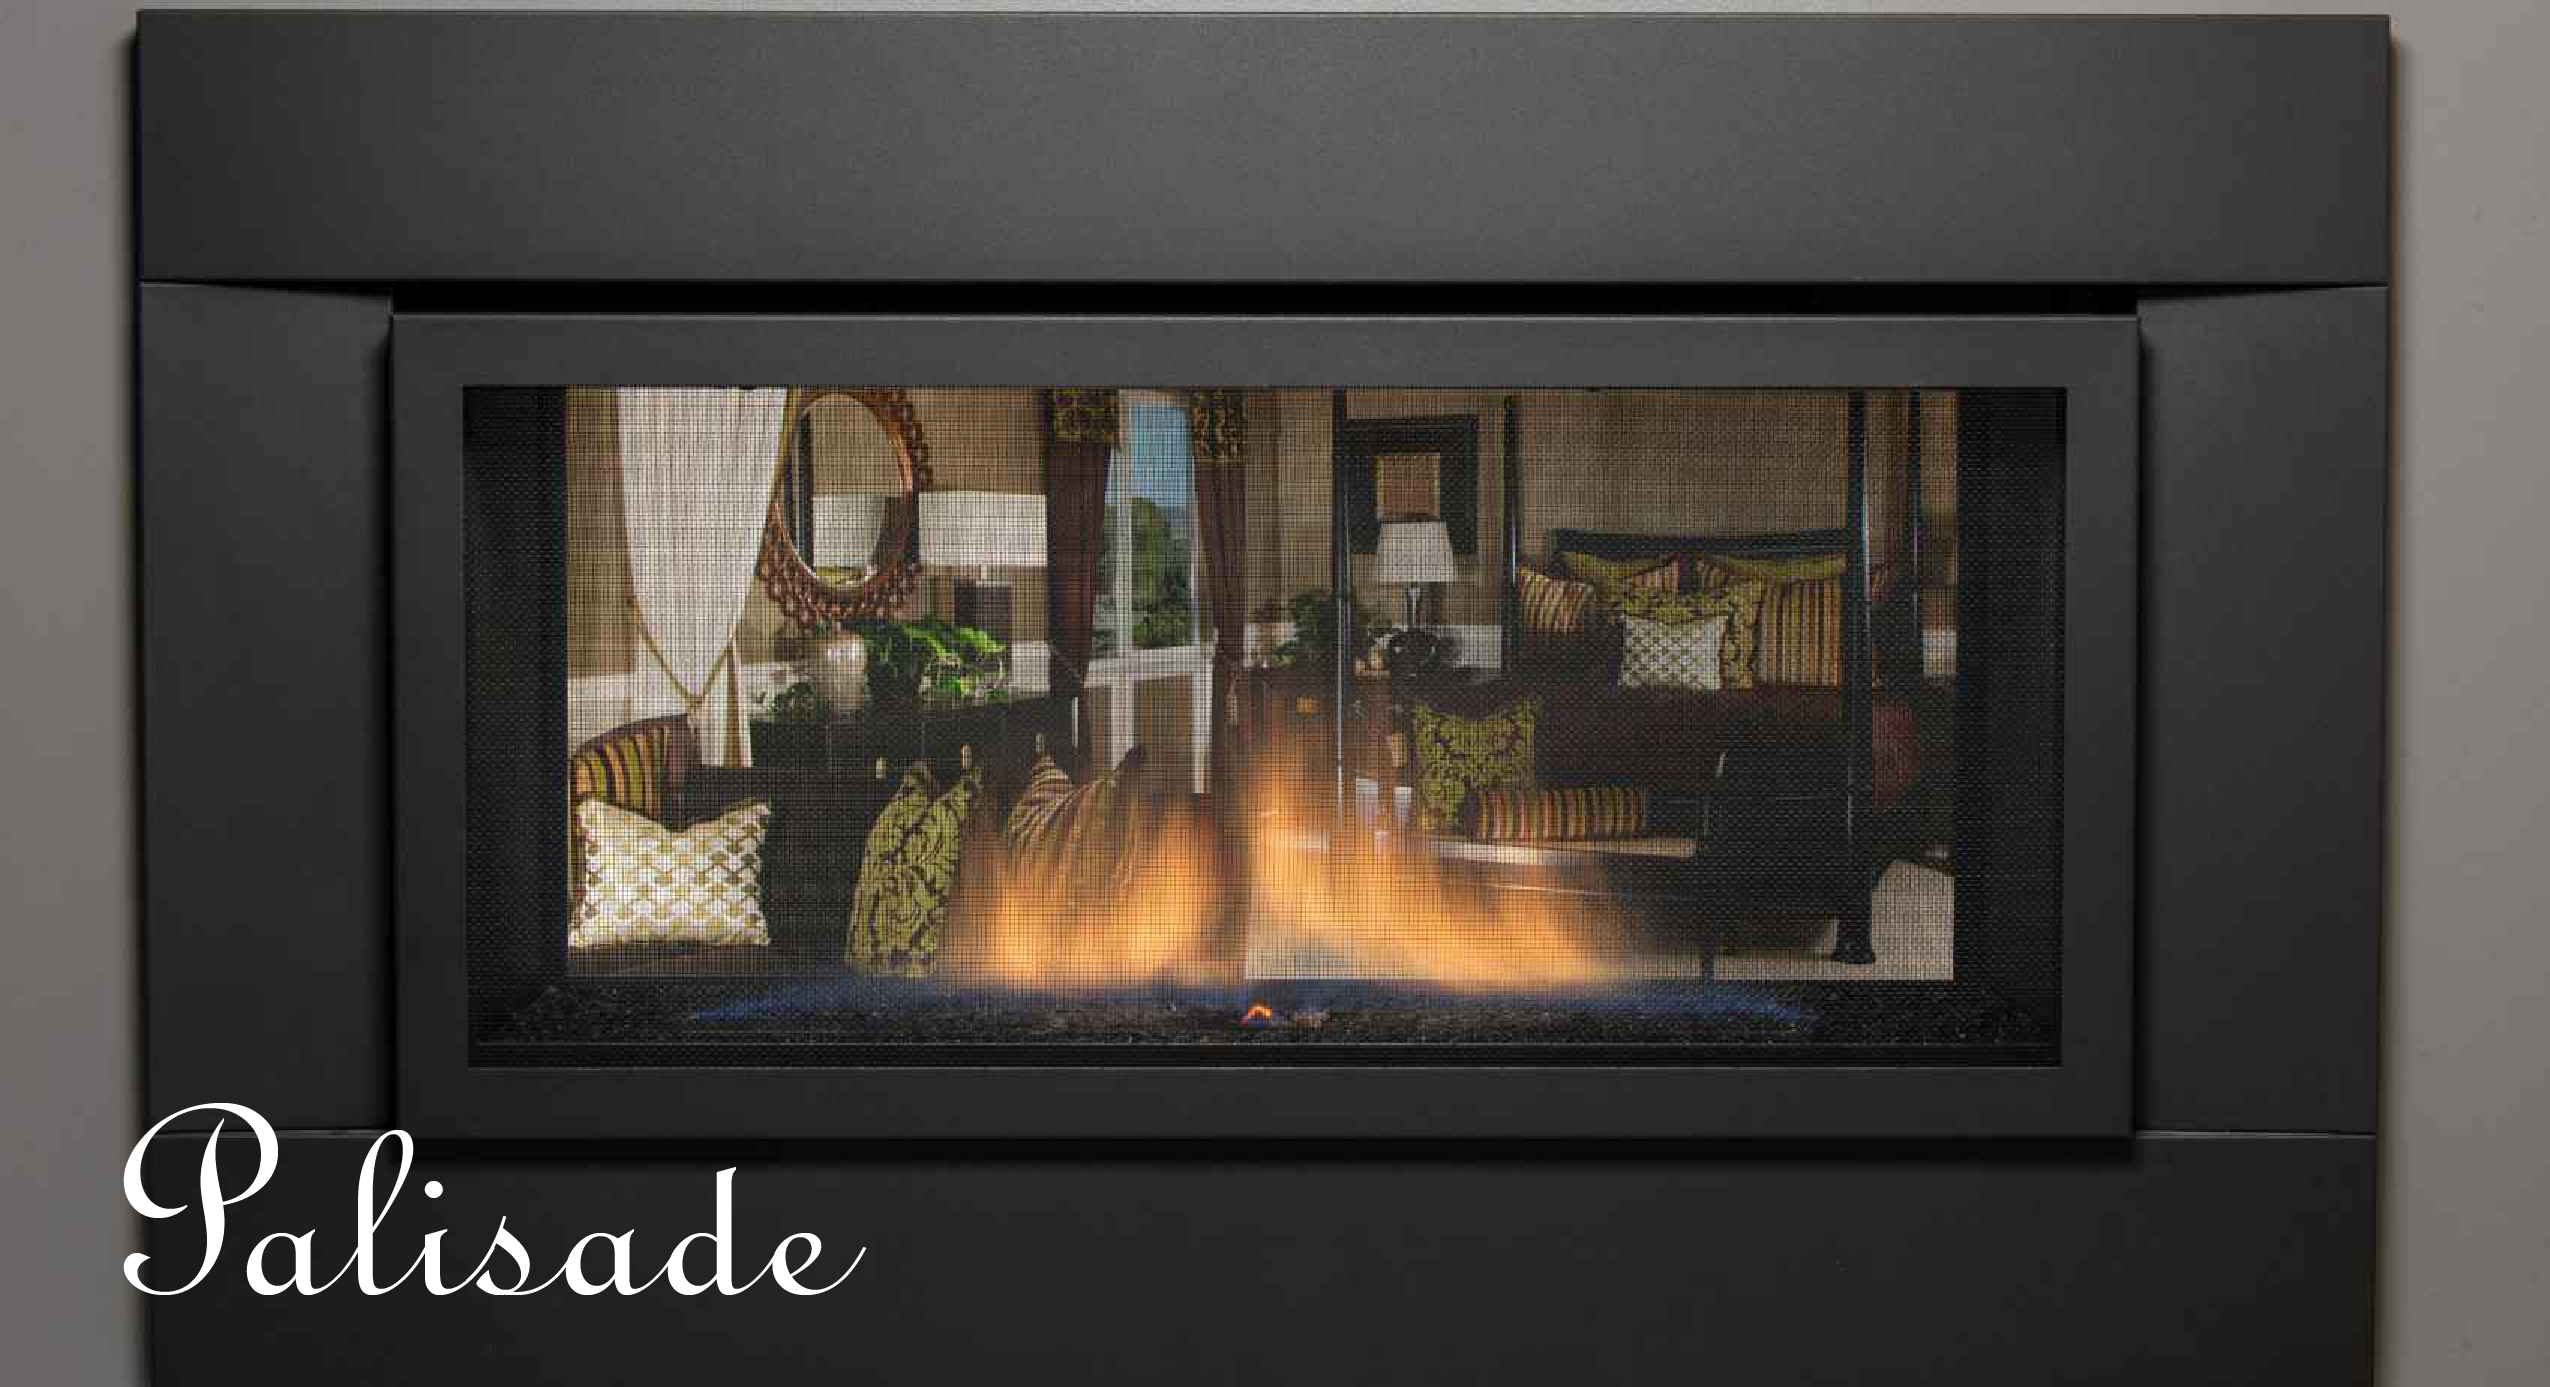 sierra flame gas fireplace the palisade 36st see thru the